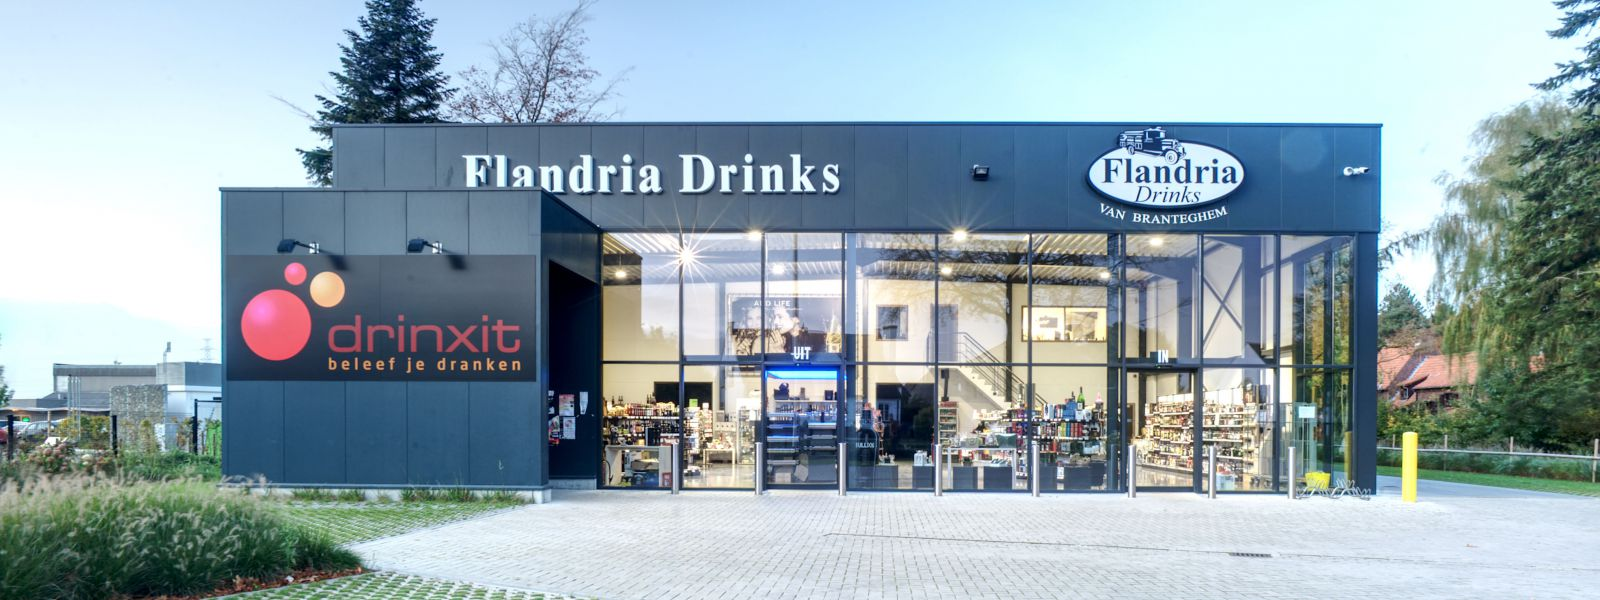 Flandria Drinks